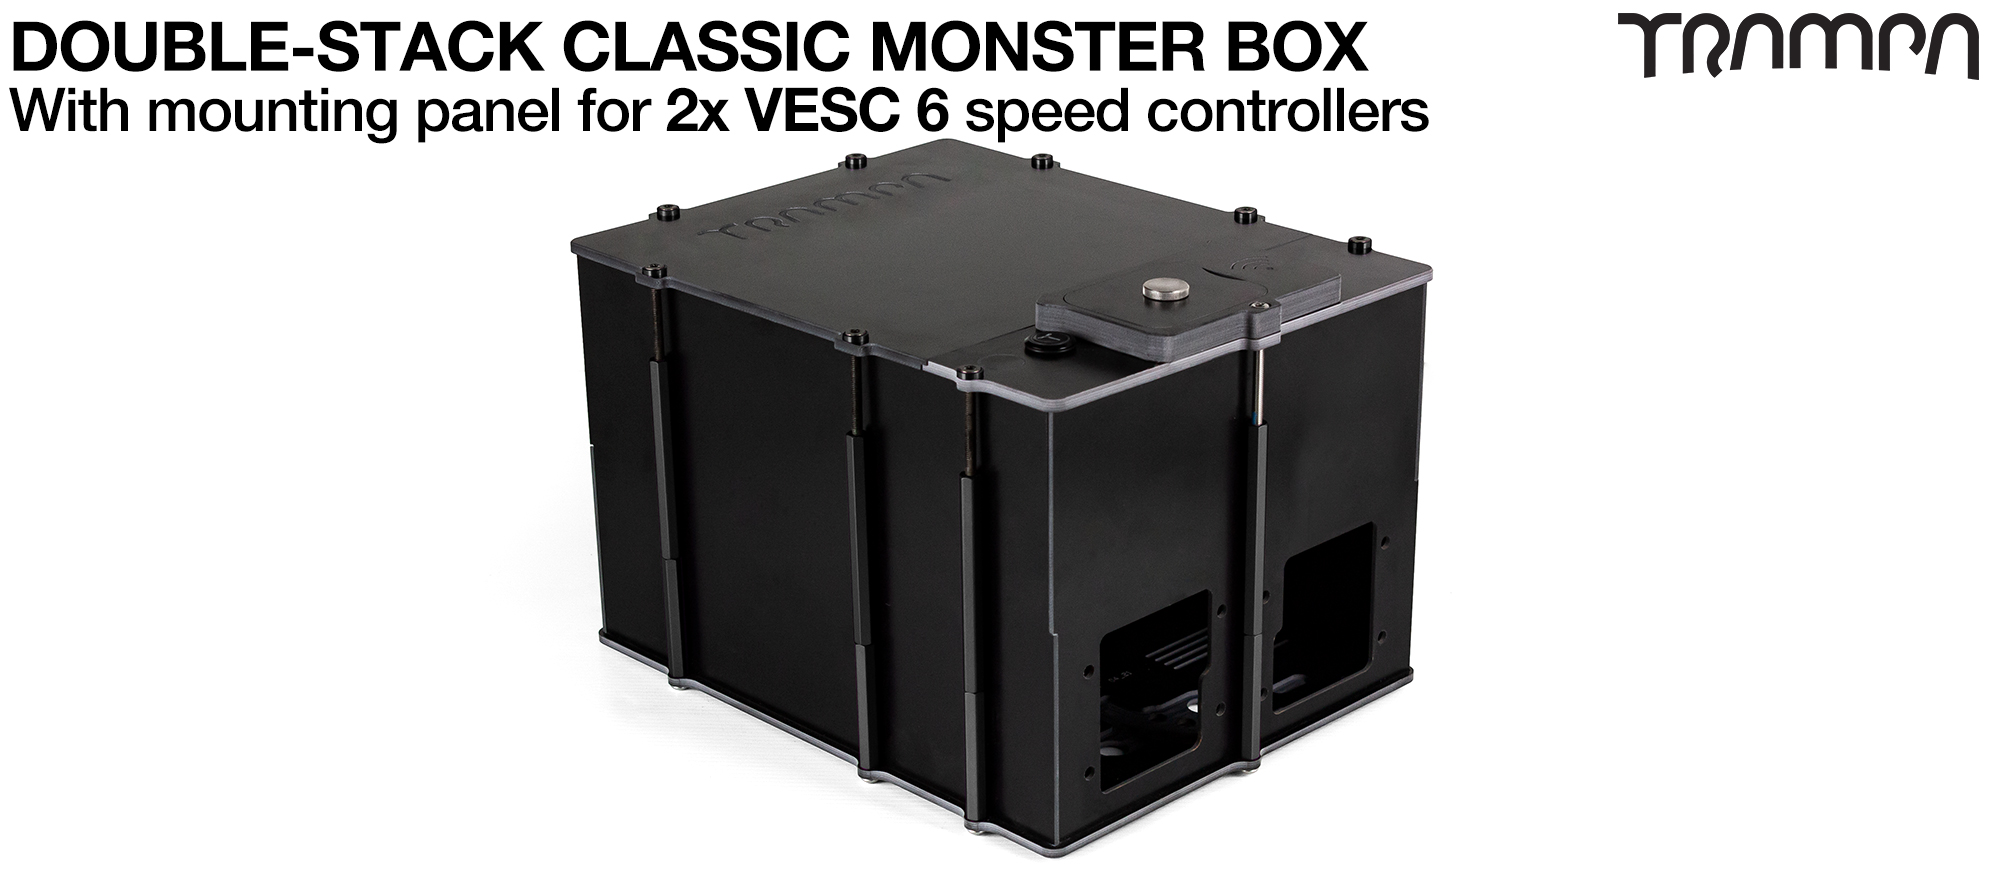 Classic MONSTER Box MkV DOUBLE STACKER fits 168x 18650 cells to give 42Ah Range or 4x 22000mAh Li-Po cells ti give 44Ah & has Panels to fit 2x VESC 6 Internally. Works in conjunction with TRAMPA's 2WD Electric Decks